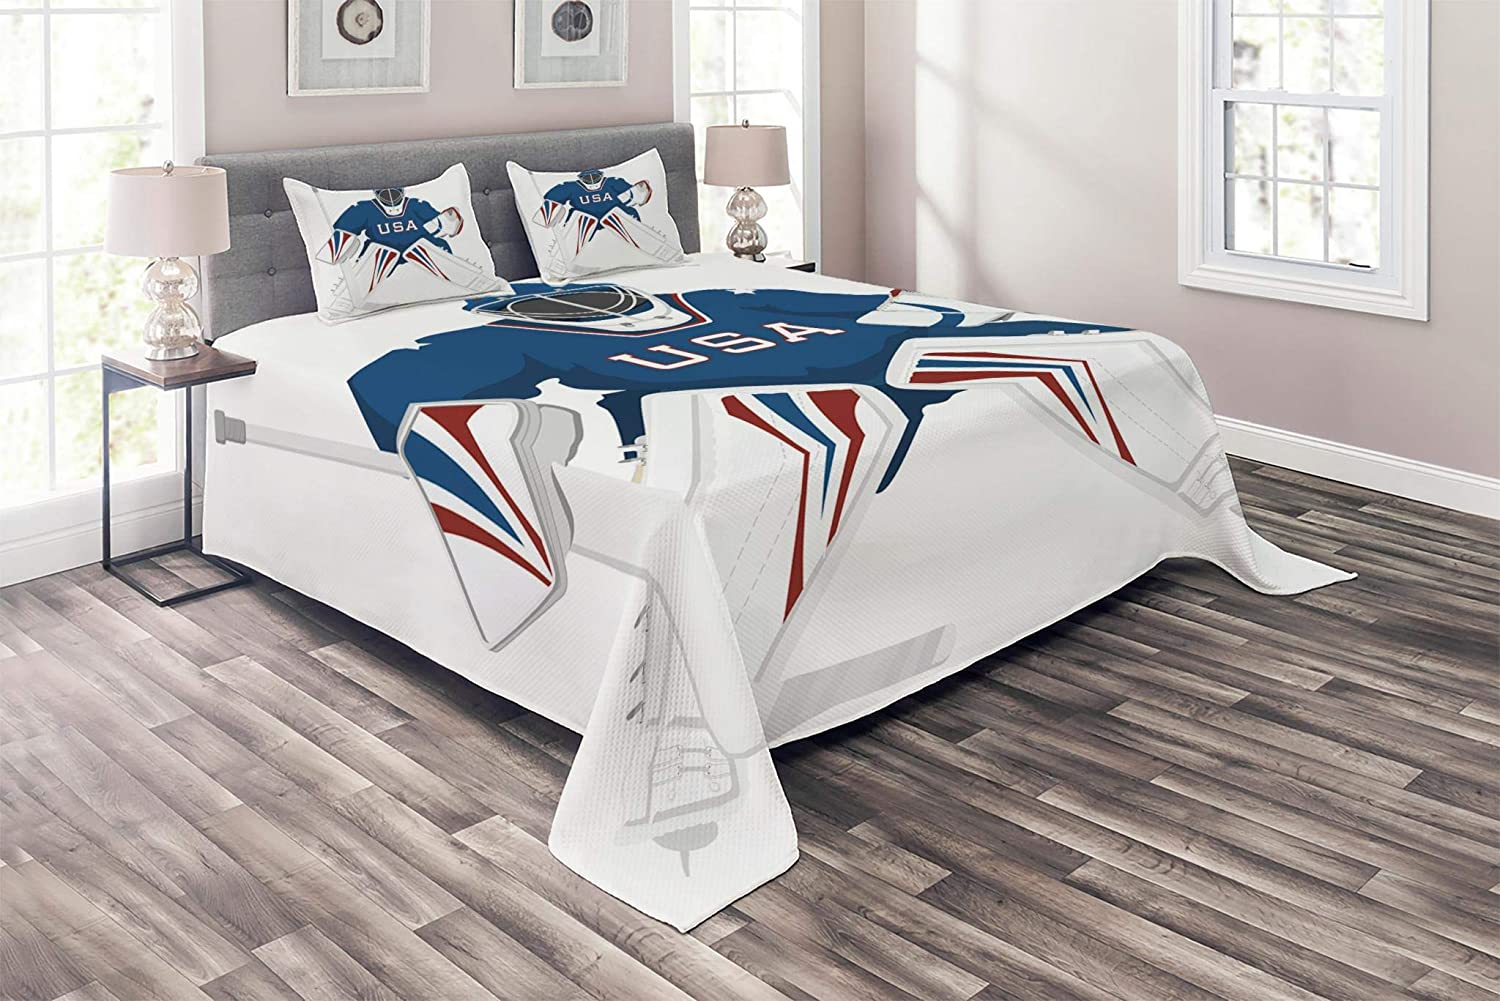 Lunarable Sports Coverlet Set Twin Size 2 Piece Decorative Quilted Bedspread Set with 1 Pillow Sham USA Hockey Goalie Protection Jersey Sport Wear Activity Hobby Illustration Burgundy Blue White bedcen/_11500/_twin